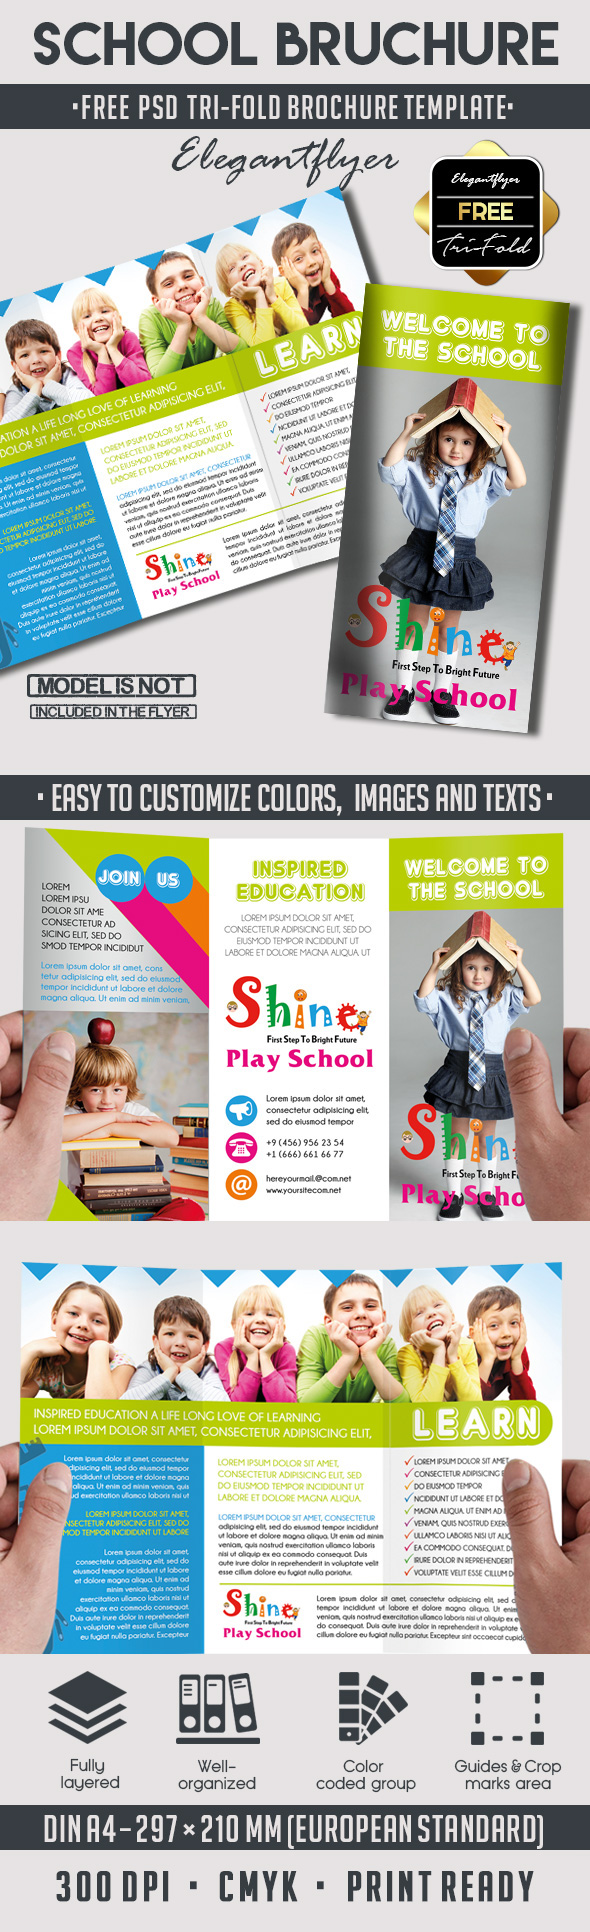 School free psd tri fold psd brochure template on behance maxwellsz